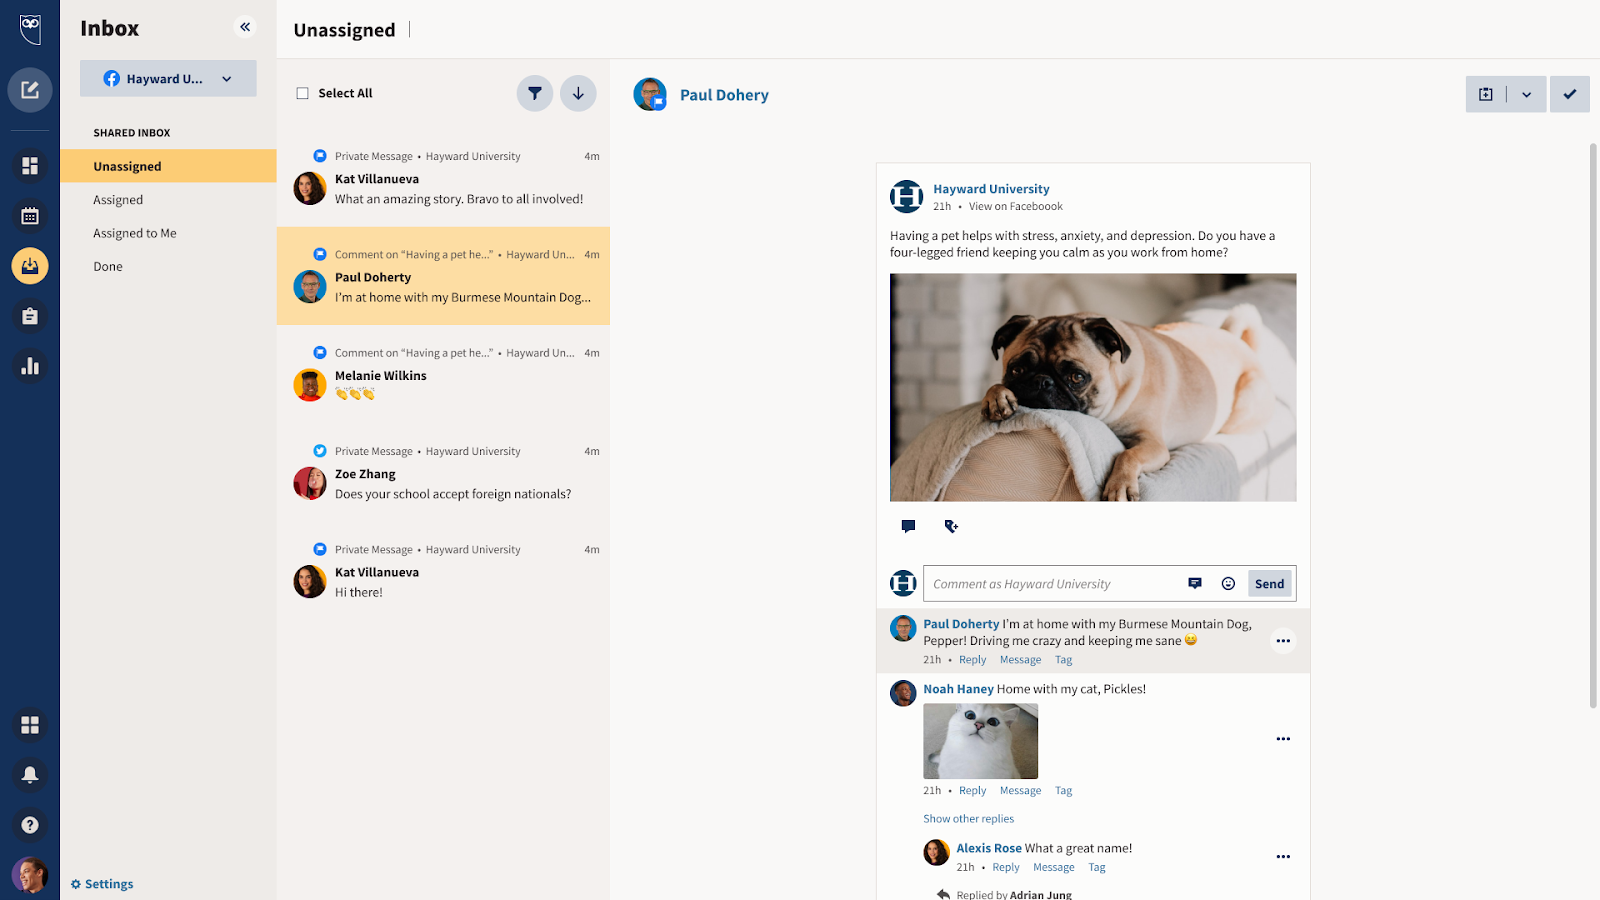 Customer Engagement: Never miss a message and respond to customer inquiries faster with a consolidated stream of messages across networks that can be triaged and assigned. Provides optional chatbot handover for automated responses.